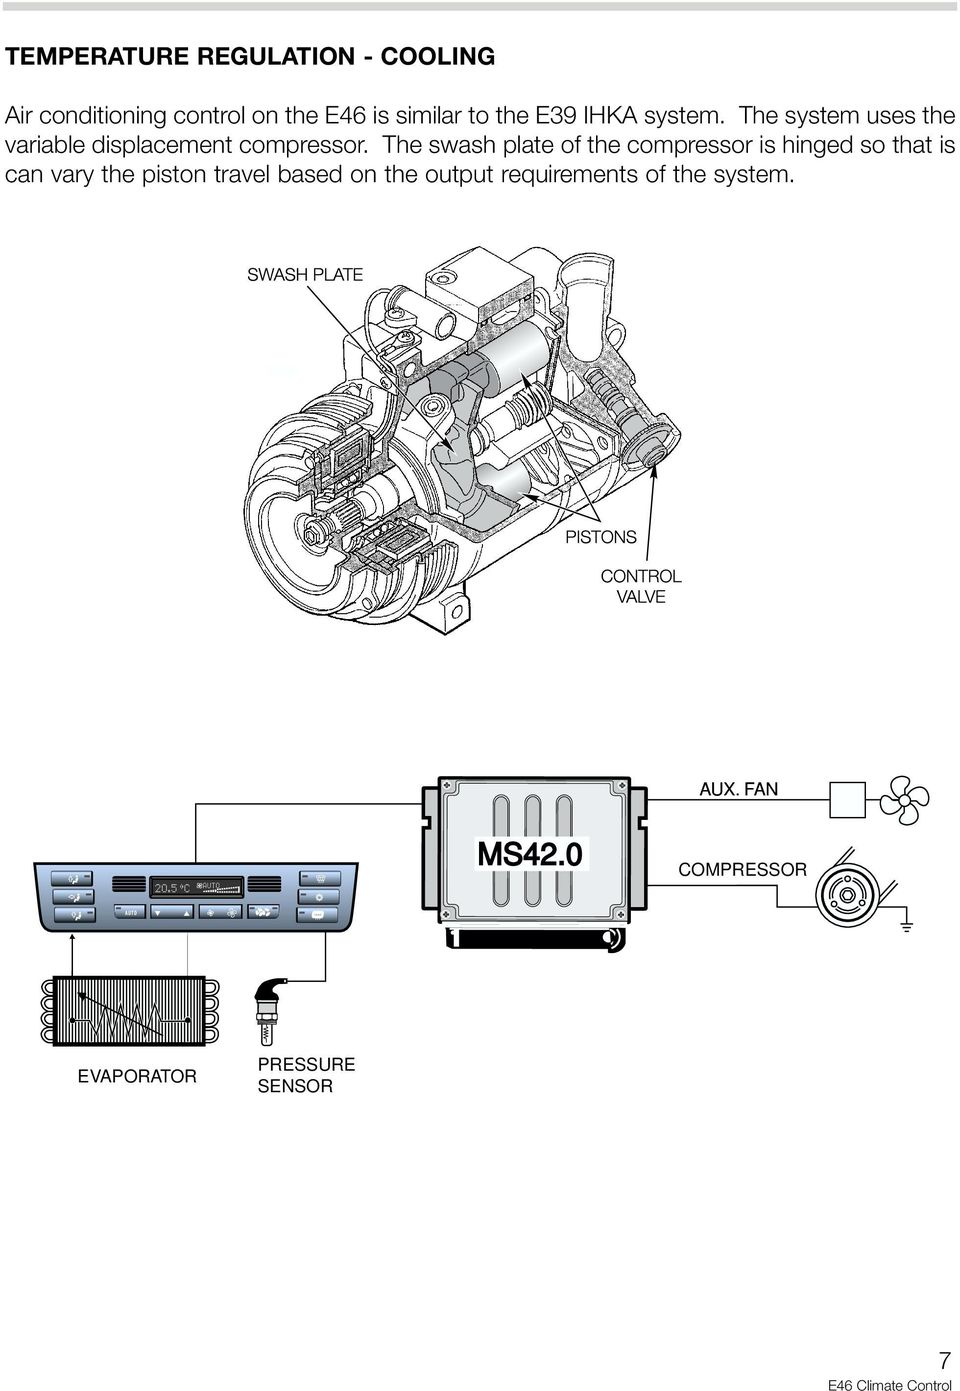 E46 Ihka Control Panel Fresh Air Micro Filter Temperature Regulation Blower Motor Wiring Diagram The Swash Plate Of Compressor Is Hinged So That Can Vary Piston Travel